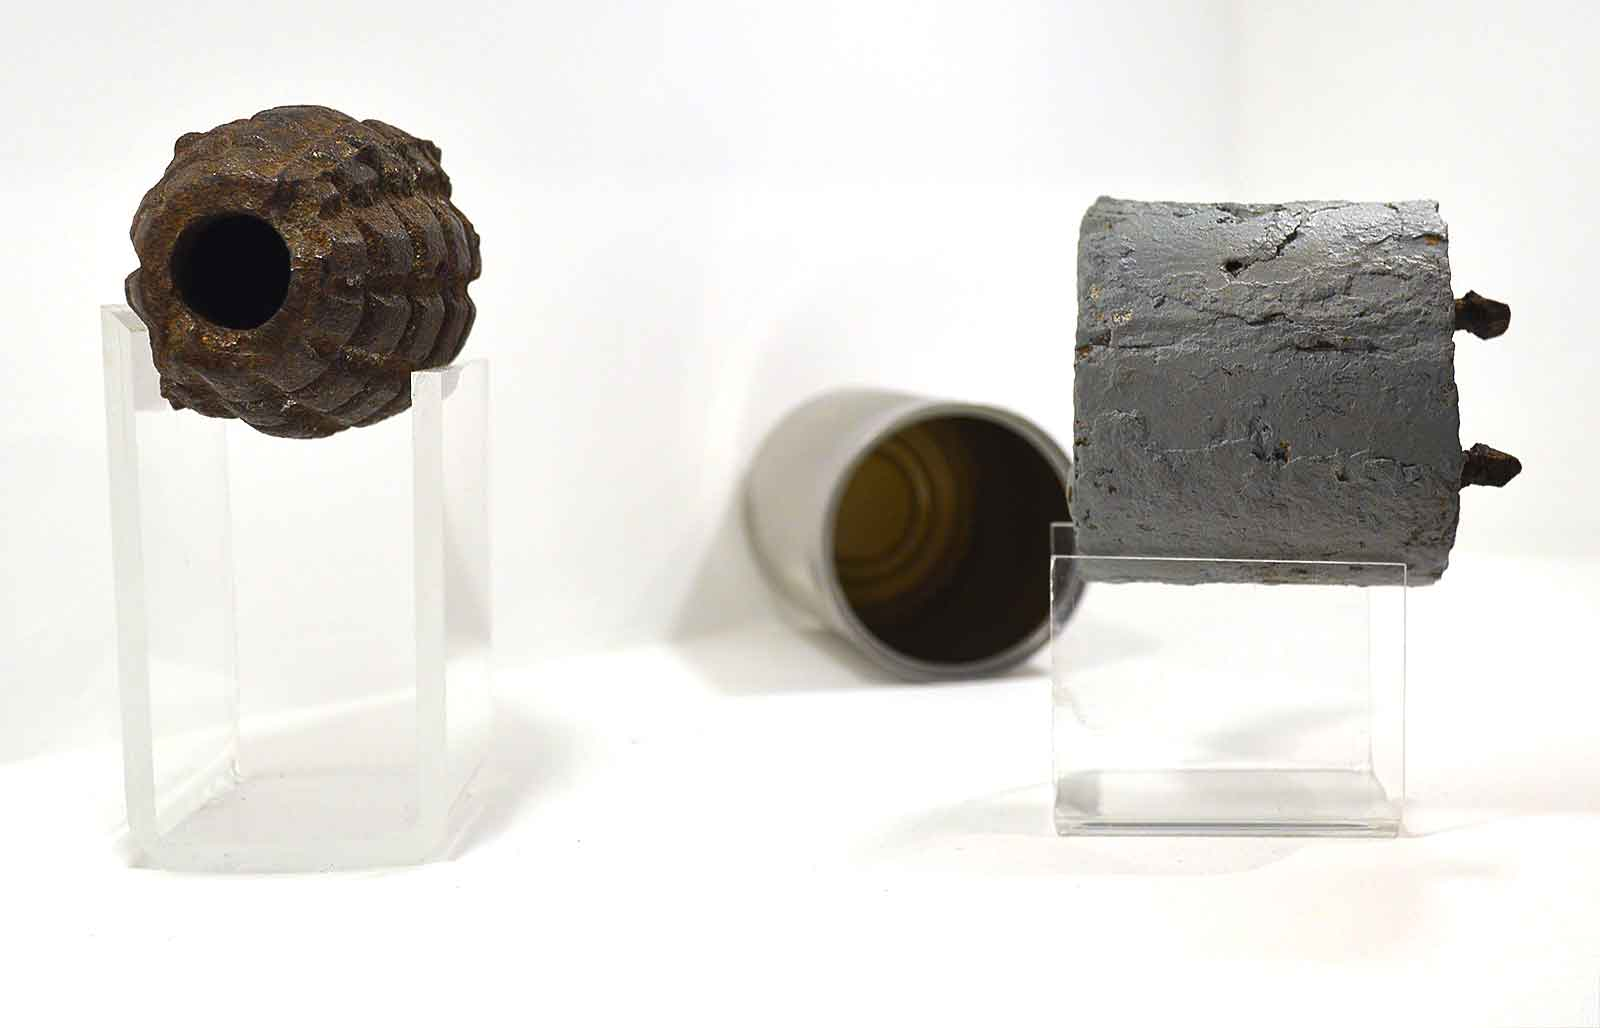 War-of-Independence-Era-Grenade-and-Home-made-Bomb